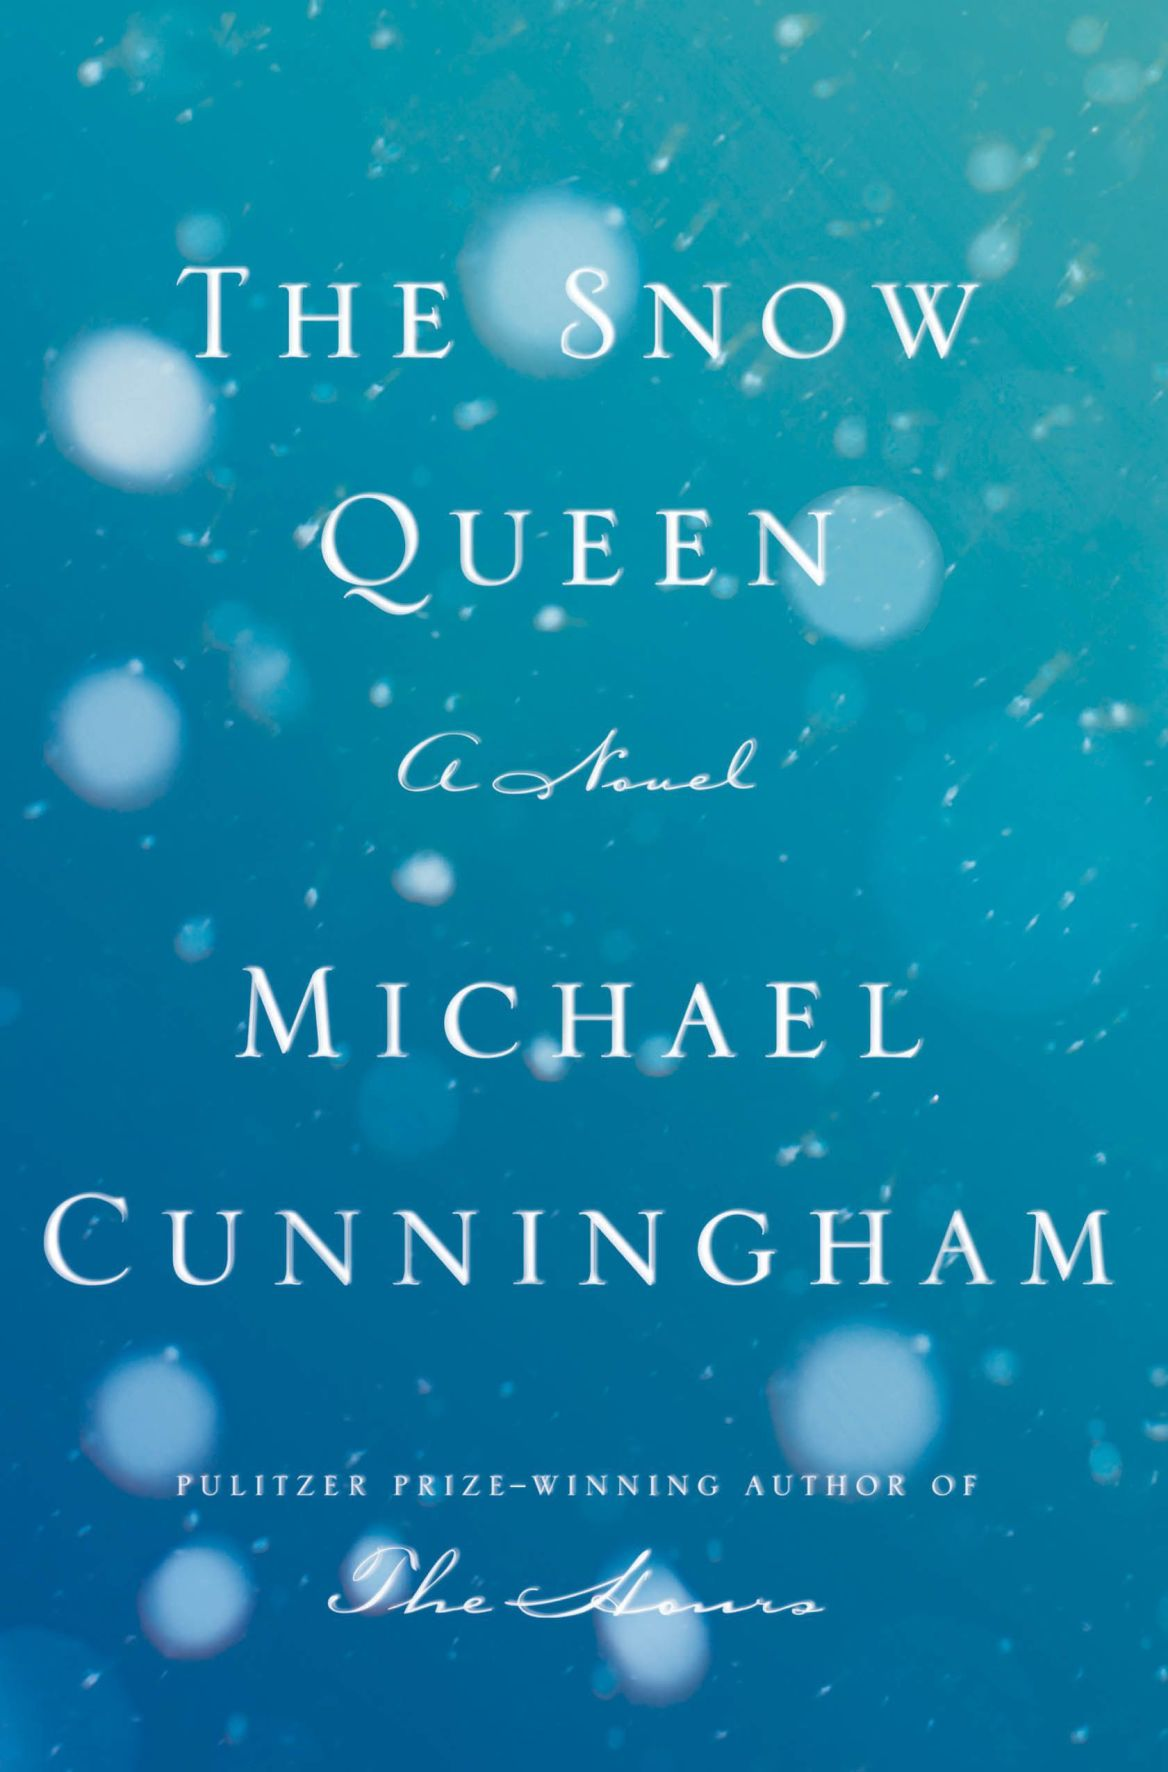 'The Snow Queen': Two brothers in icy grip of mid-life